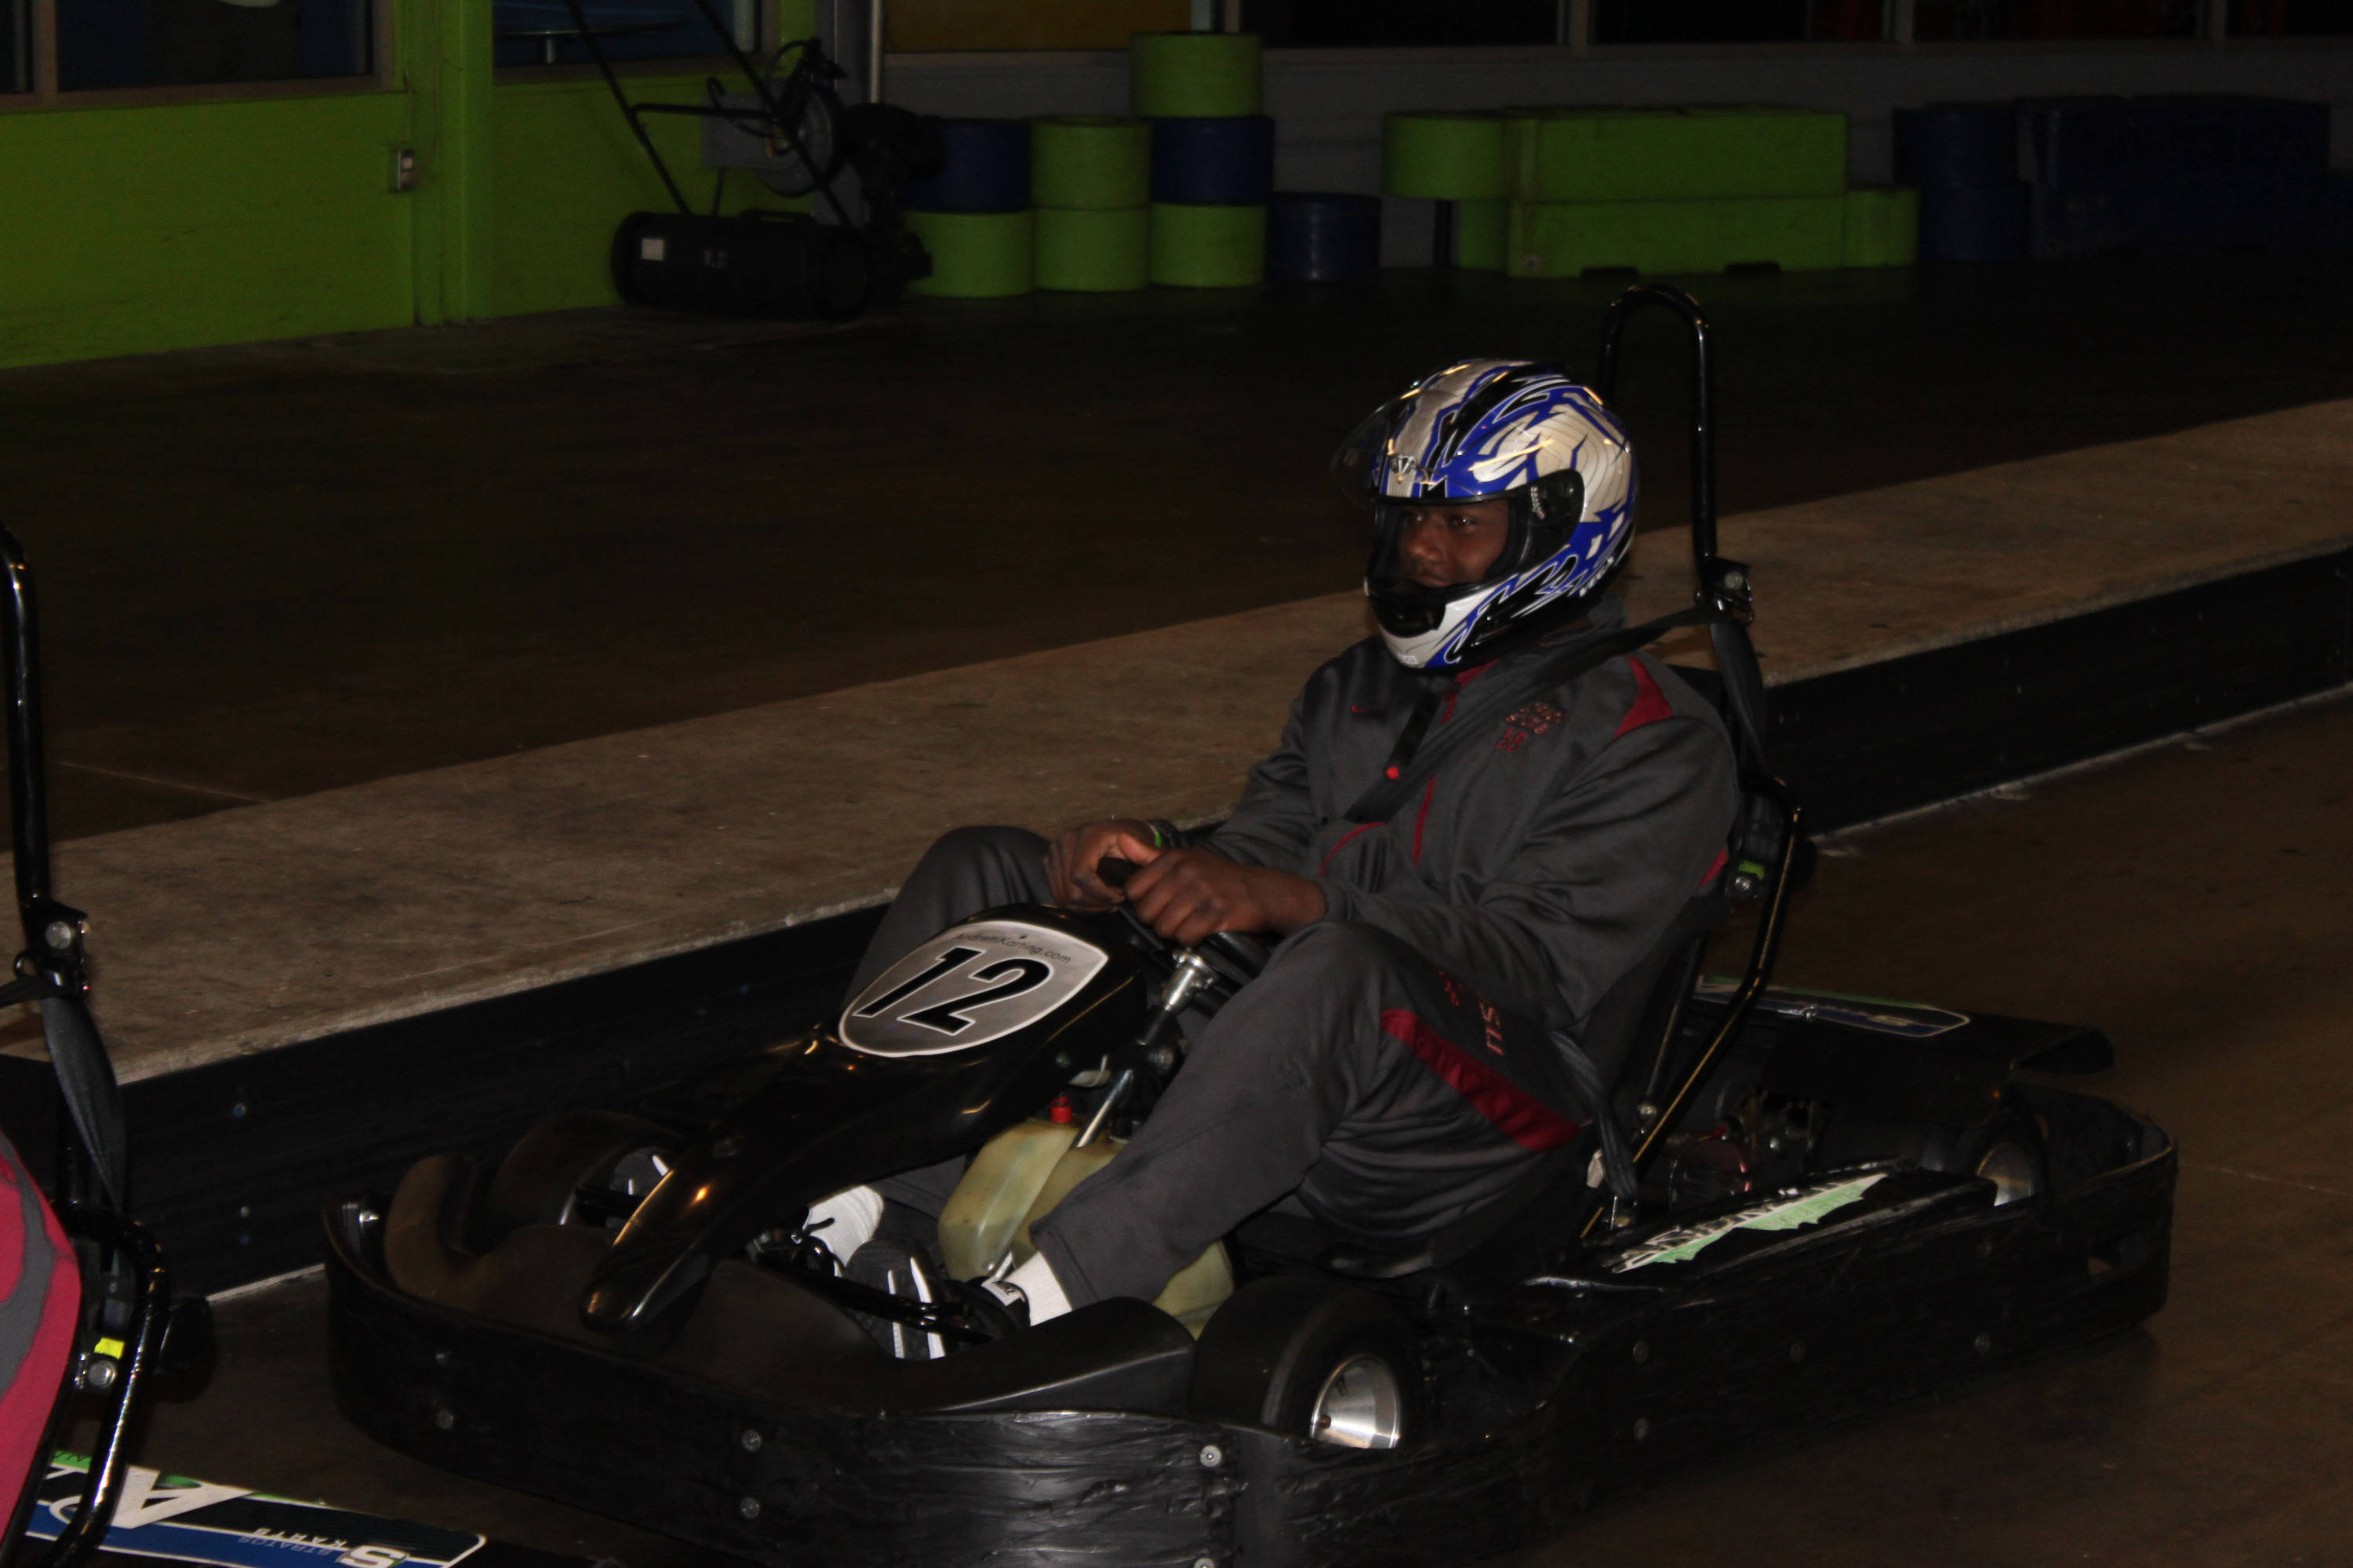 Chick-fil-A Bowl Mario Andretti Racing Experience